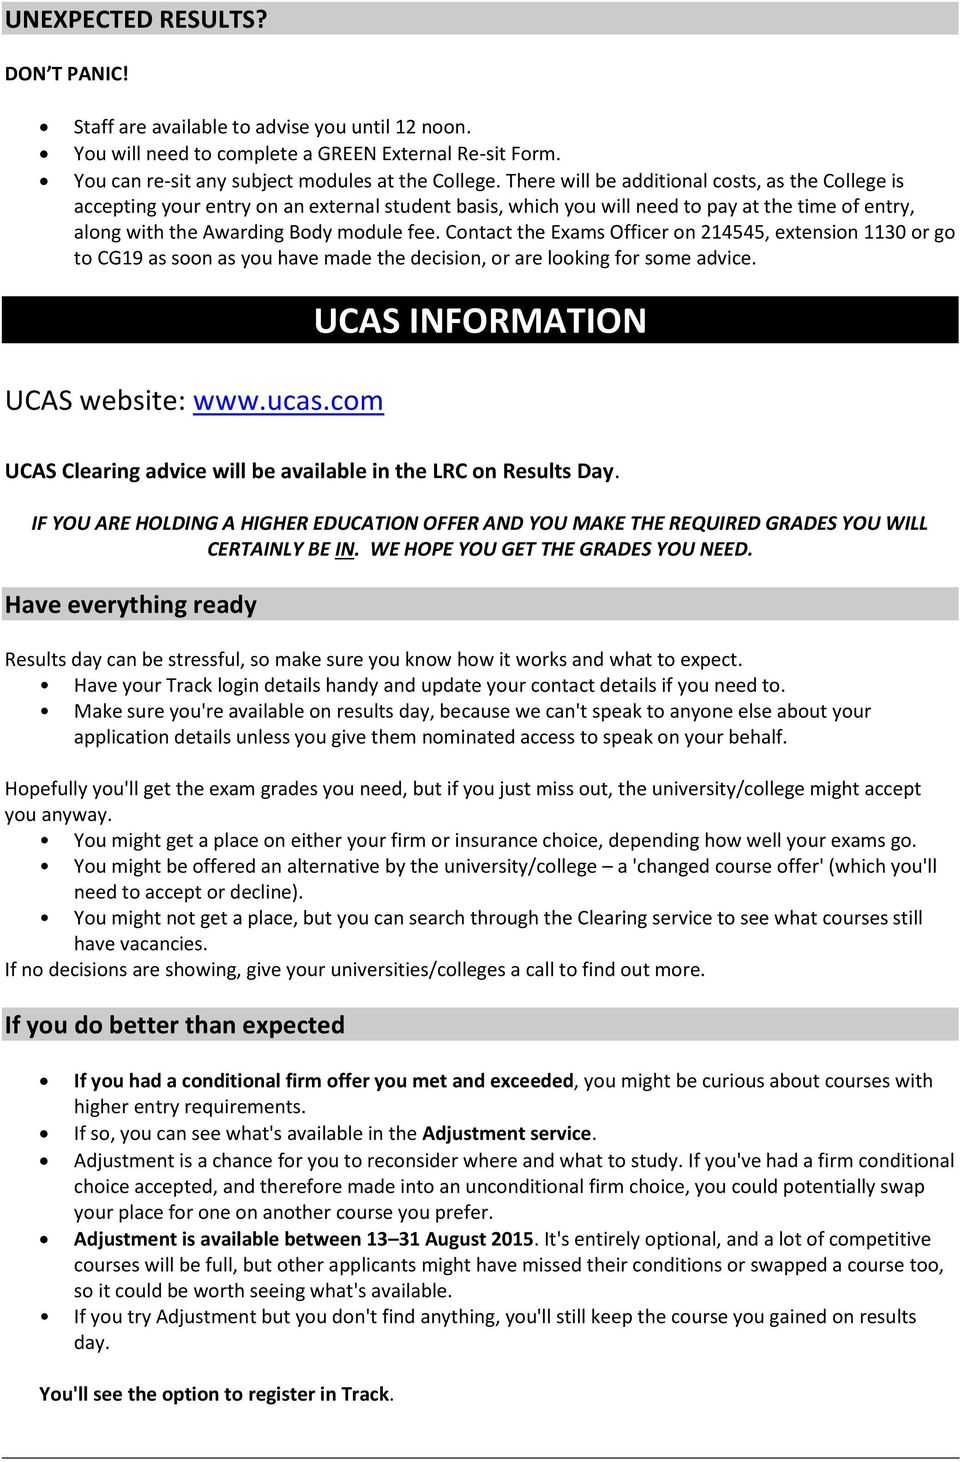 Contact the Exams Officer on 214545, extension 1130 or go to CG19 as soon as you have made the decision, or are looking for some advice. UCAS website: www.ucas.